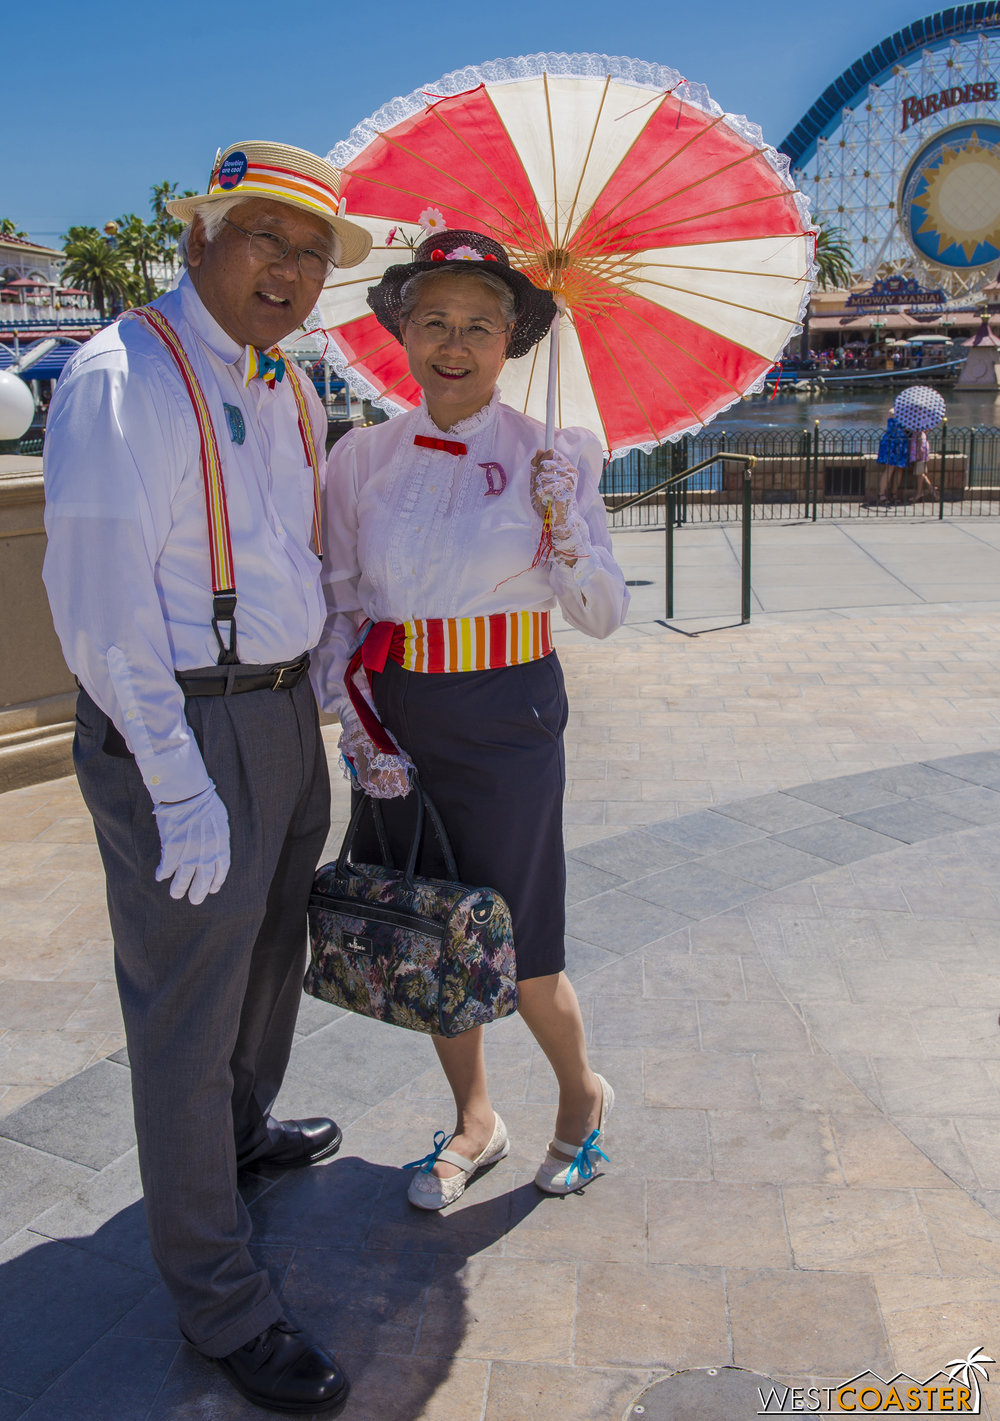 They are   @CosplayParents   on Instagram, and I saw them in a  Mary Poppins  theme at last fall's Dapper Day too.